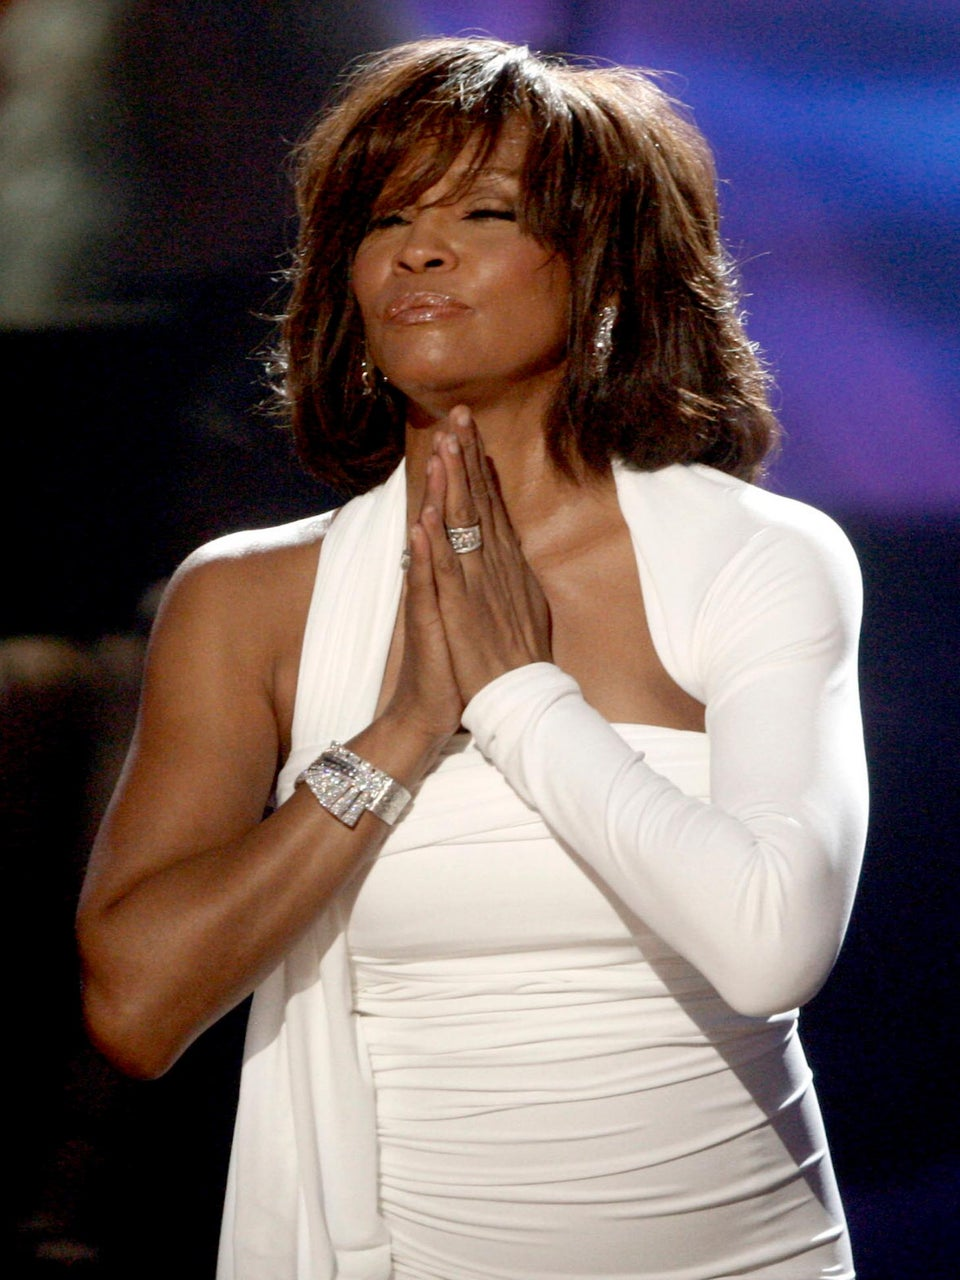 'The Voice' Pulls Whitney Houston Hologram After Footage Leaks Online